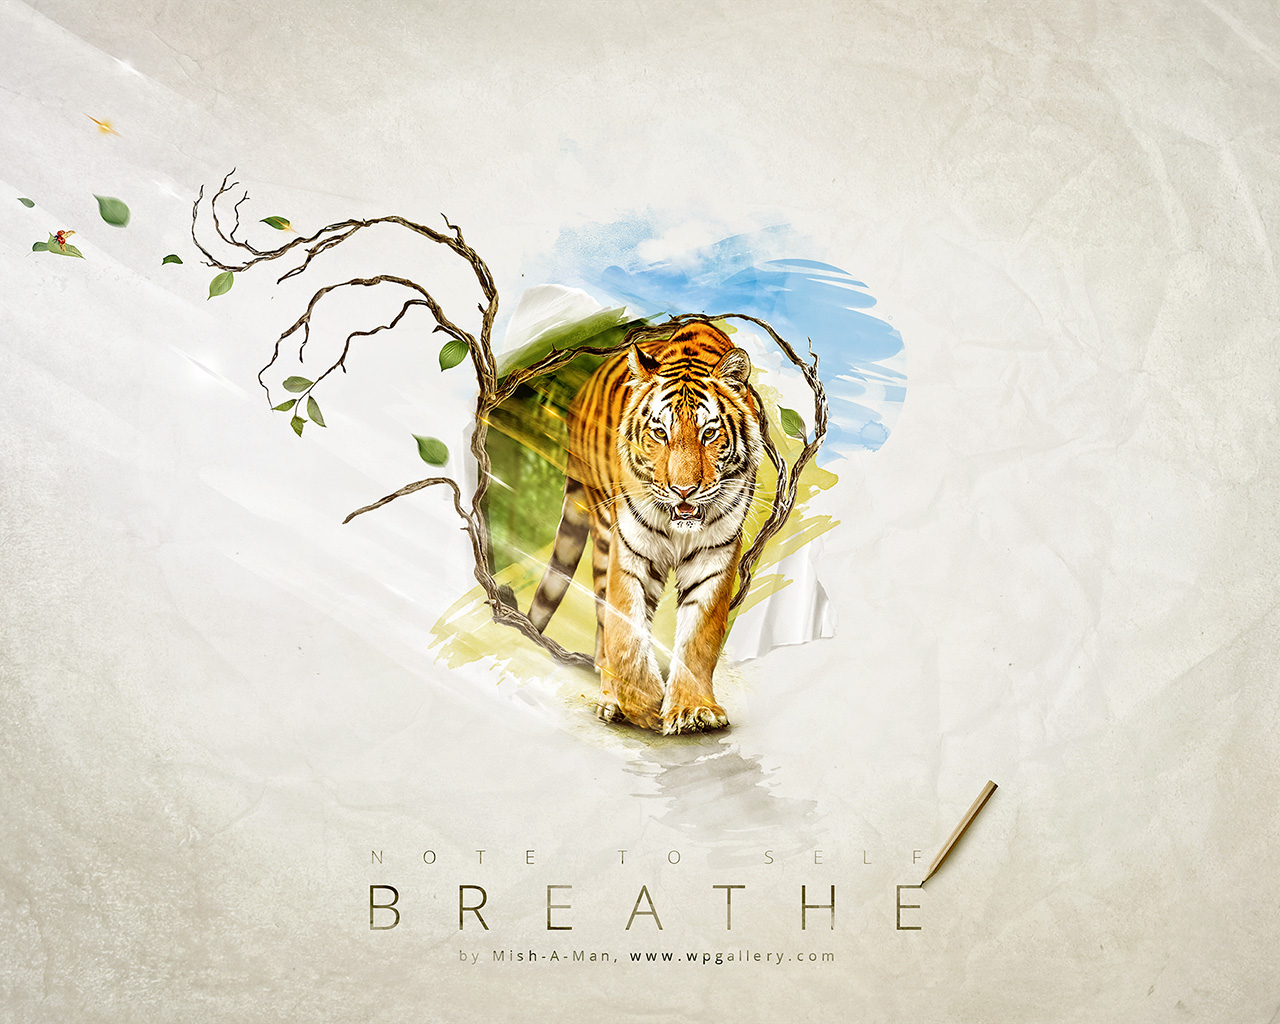 Breathe for 1280 x 1024 resolution